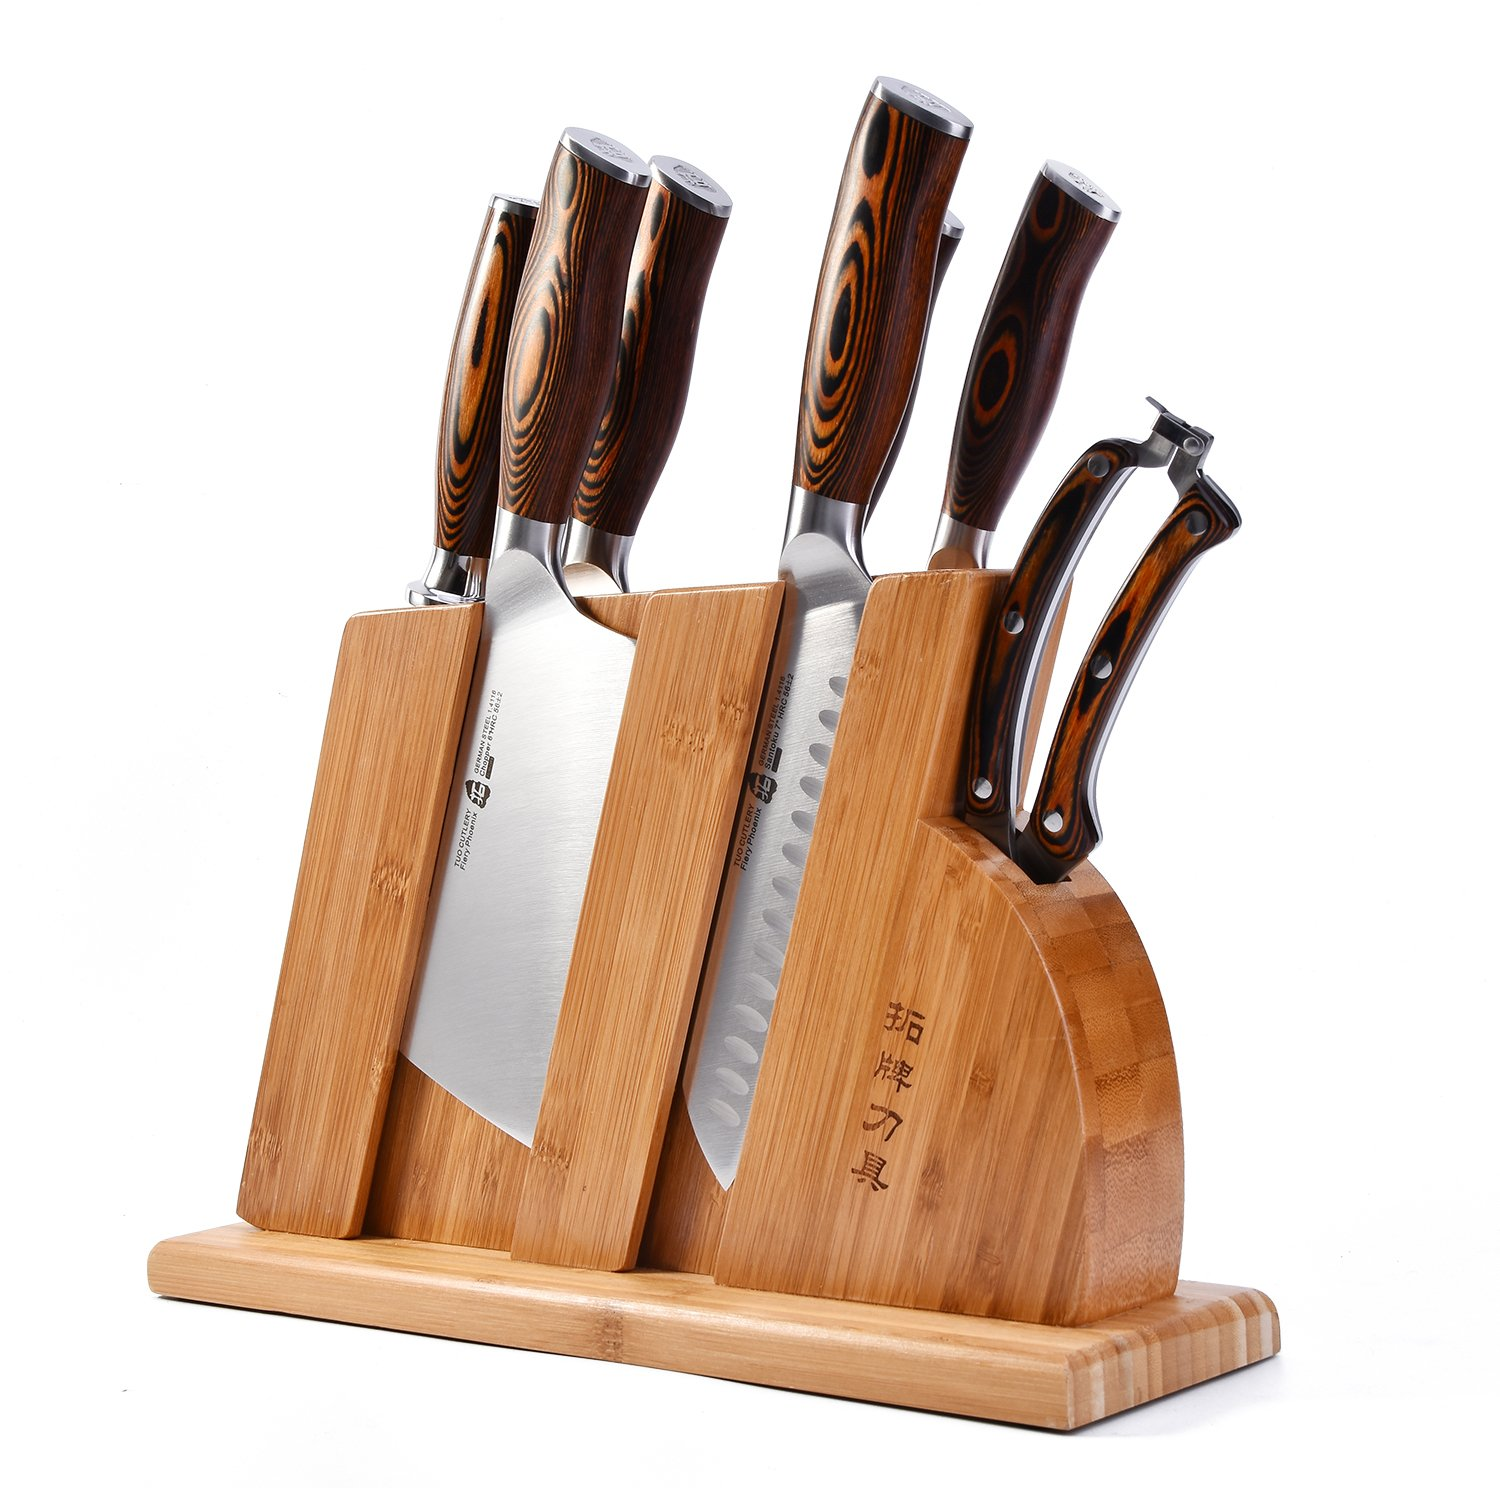 TUO Cutlery Knife Set with Wooden Block, Honing Steel and Shears-Forged HC German Steel X50CrMoV15 with Pakkawood Handle - Fiery Series 8pcs Knives Set